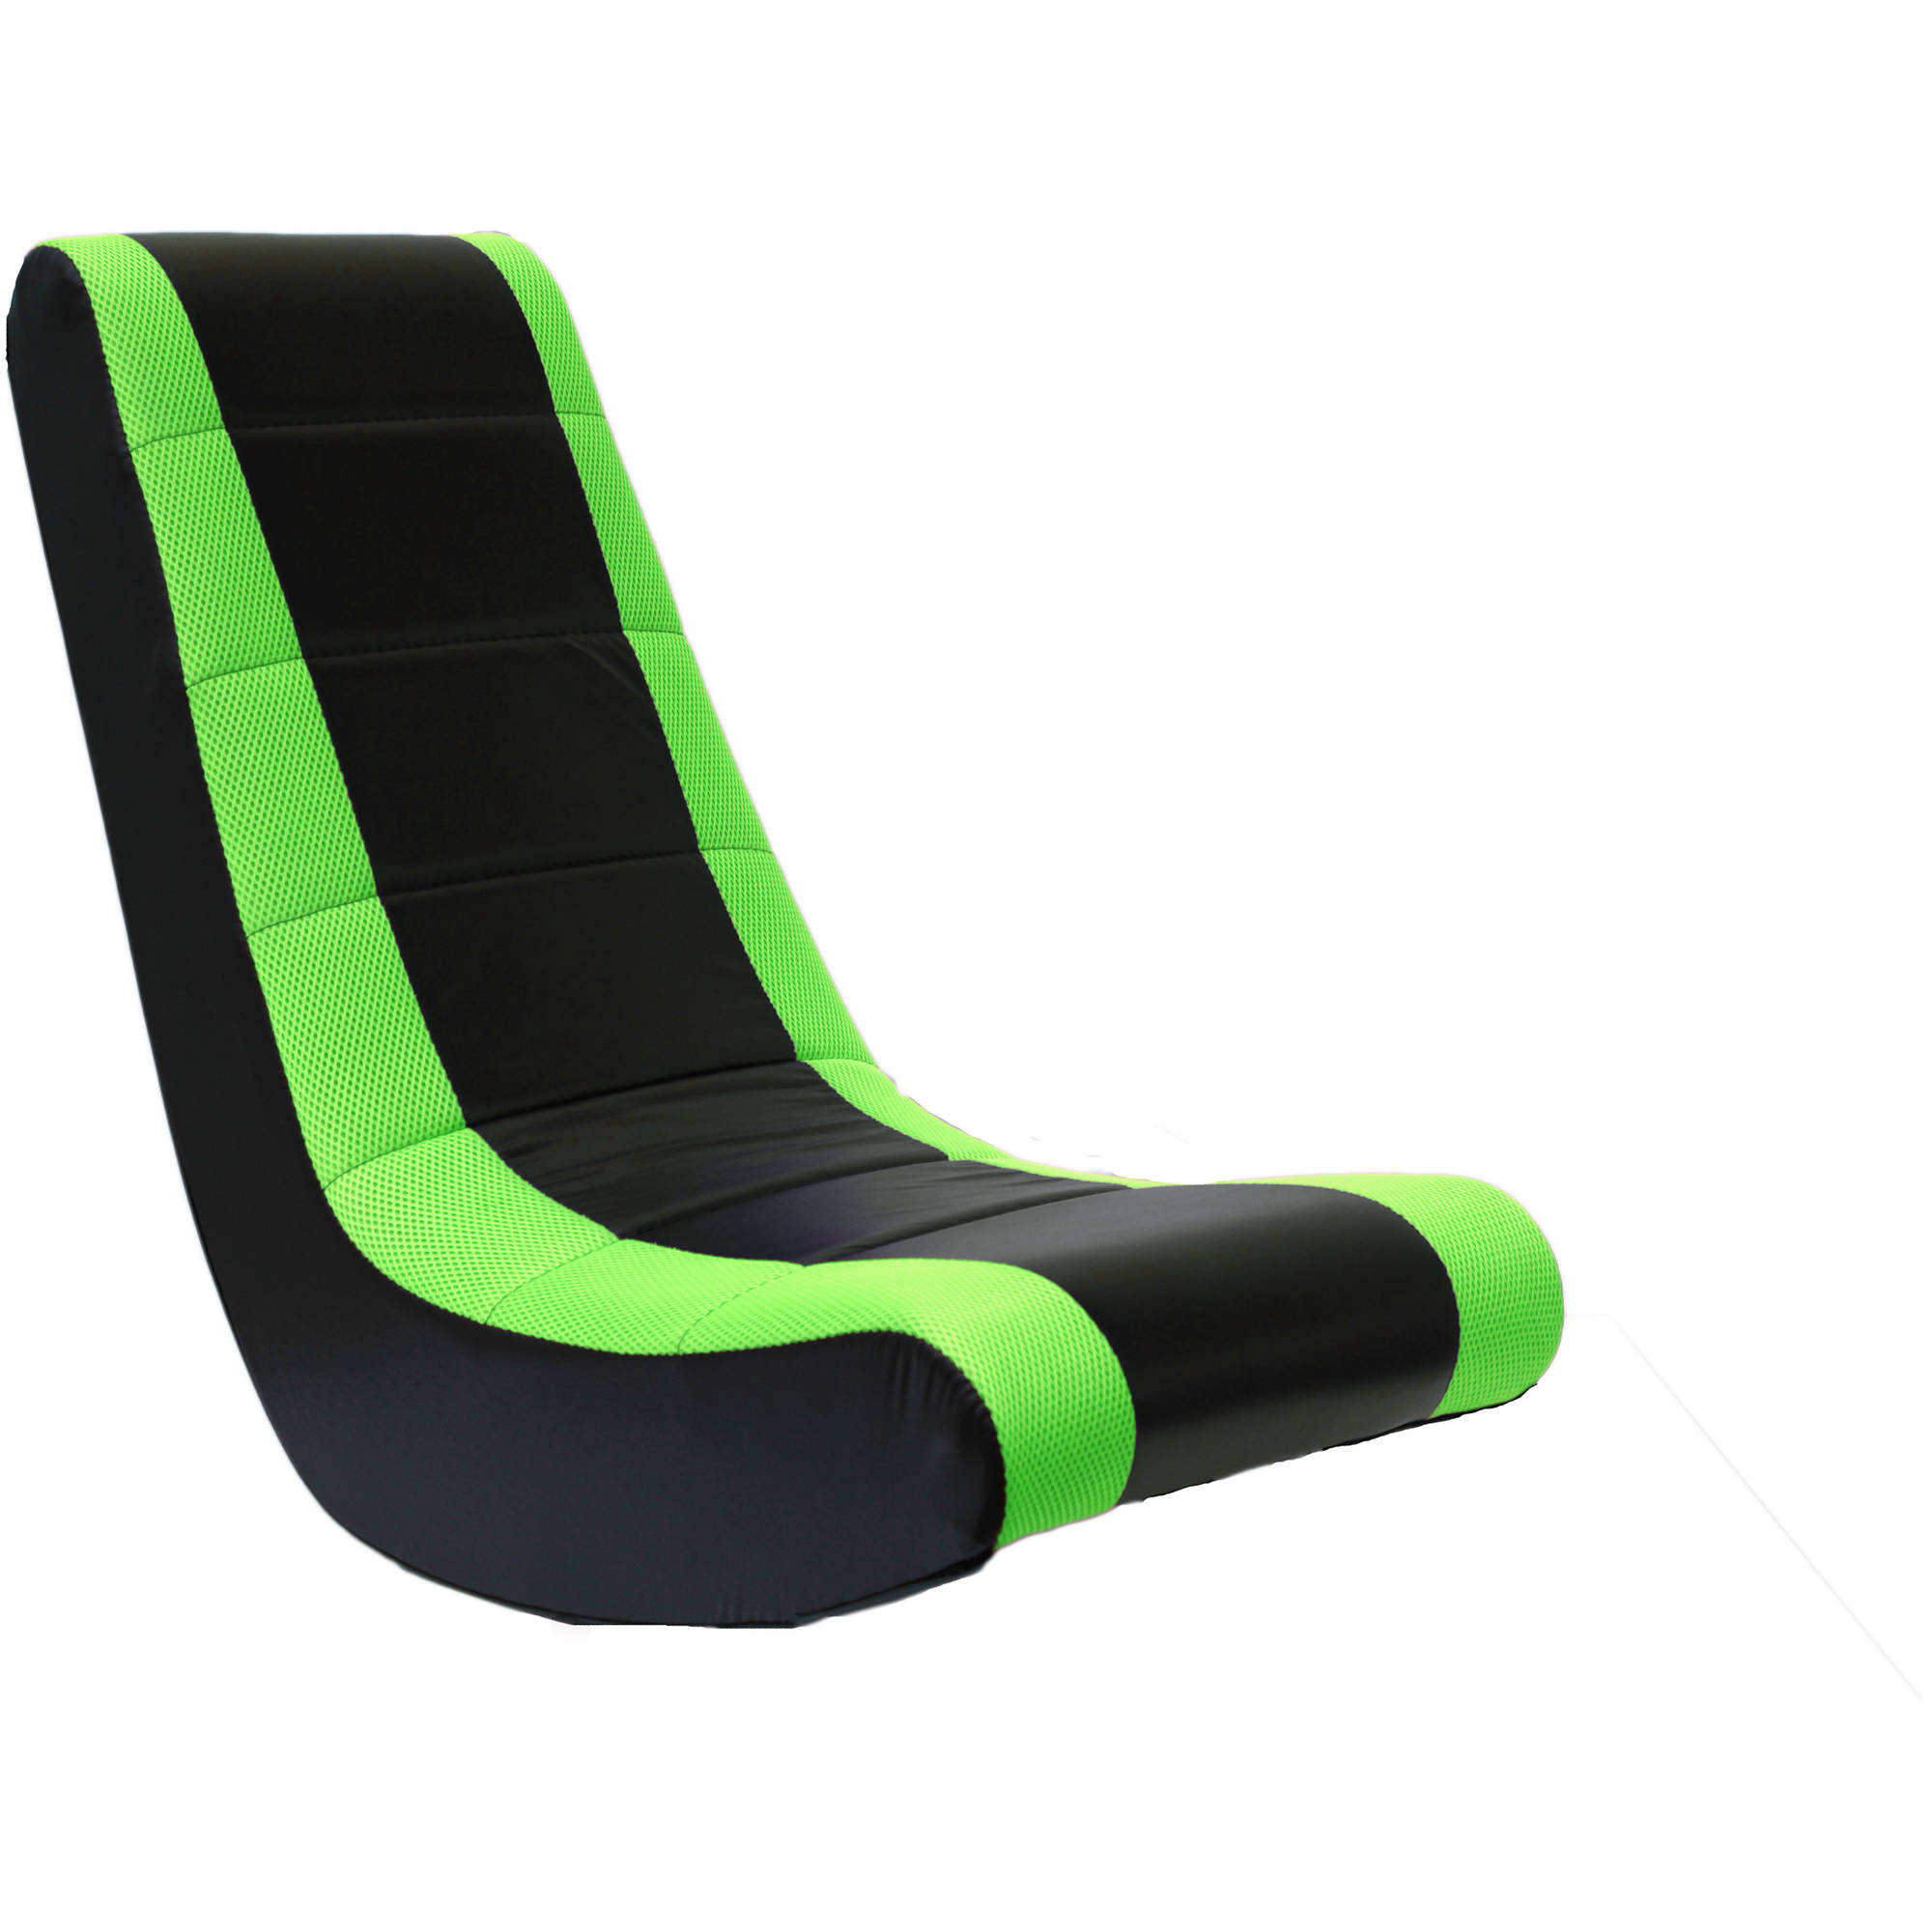 Beau Gaming Chair Ergonomic Home Relax Seat Vinyl Furniture Teens Kids Boys Game  Room